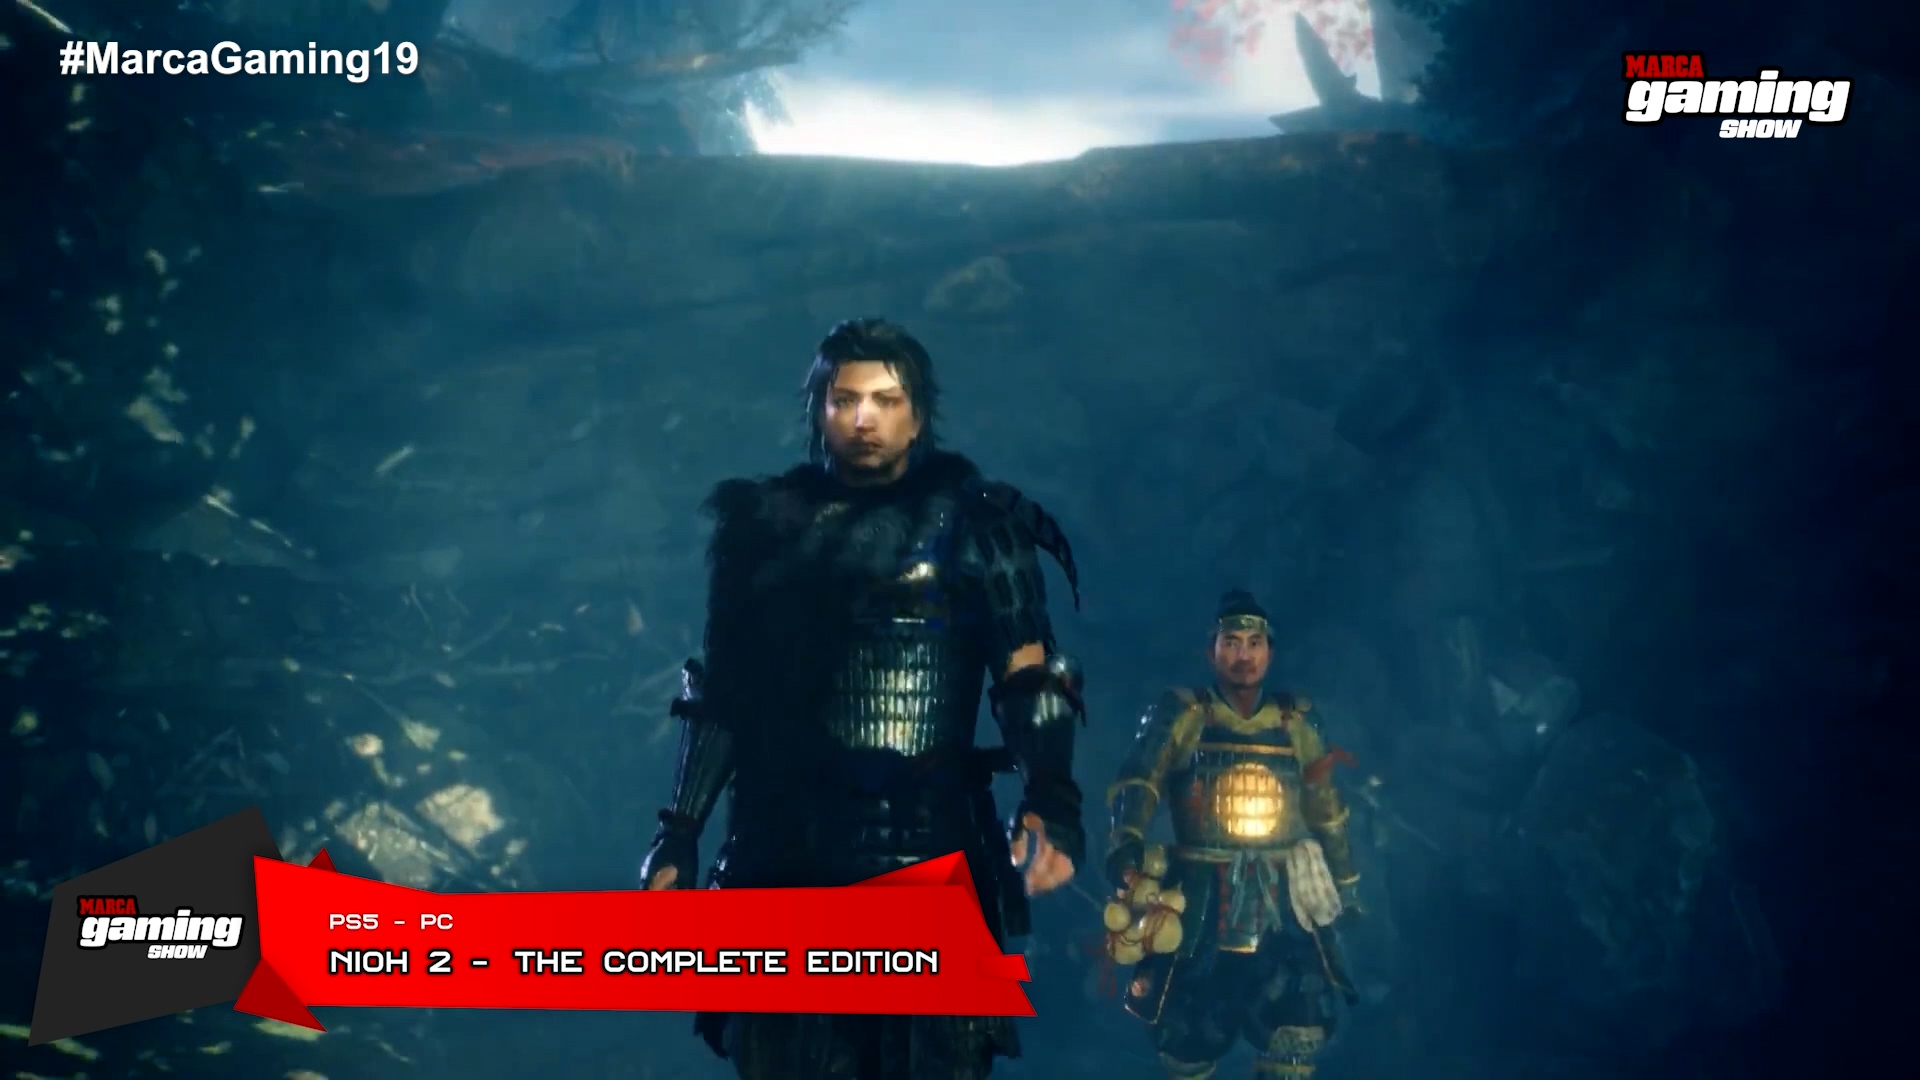 Nioh 2 - The Complete Edition (PC - PS4)